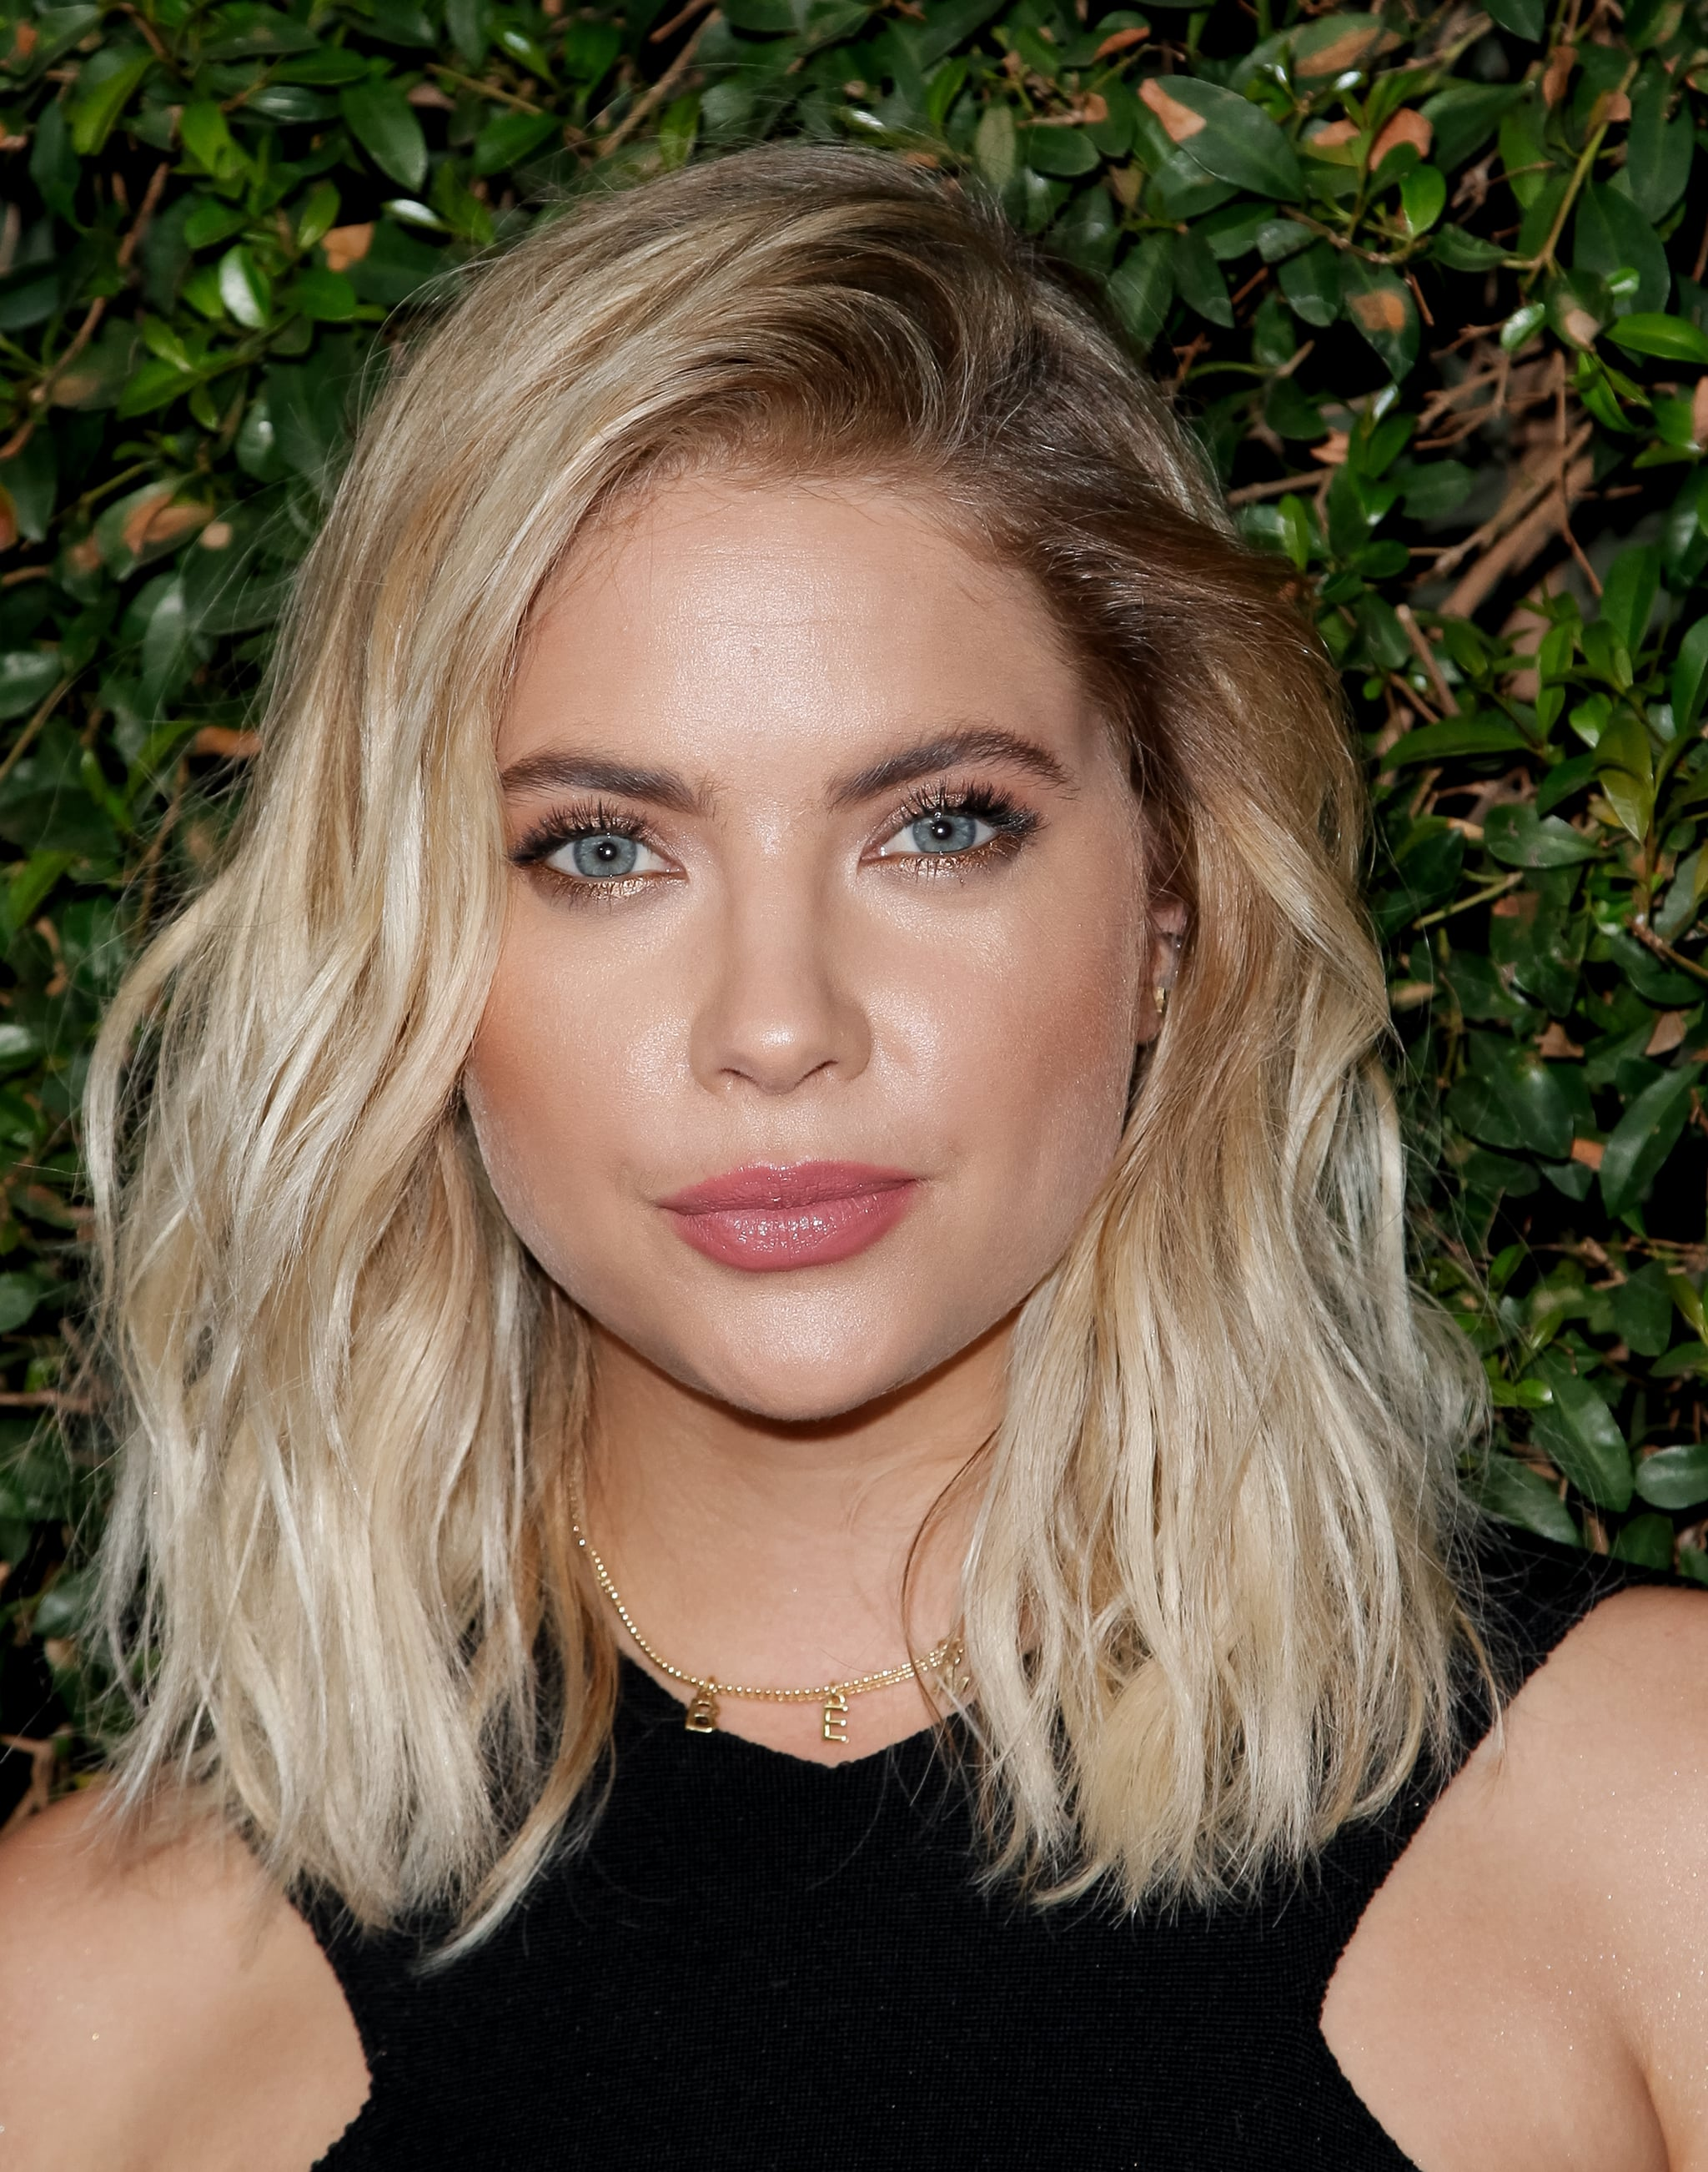 HOLLYWOOD, CA - OCTOBER 29:  Ashley Benson attends the celebration for 'Pretty Little Liars' final season at Siren Studios on October 29, 2016 in Hollywood, California.  (Photo by Tibrina Hobson/Getty Images)